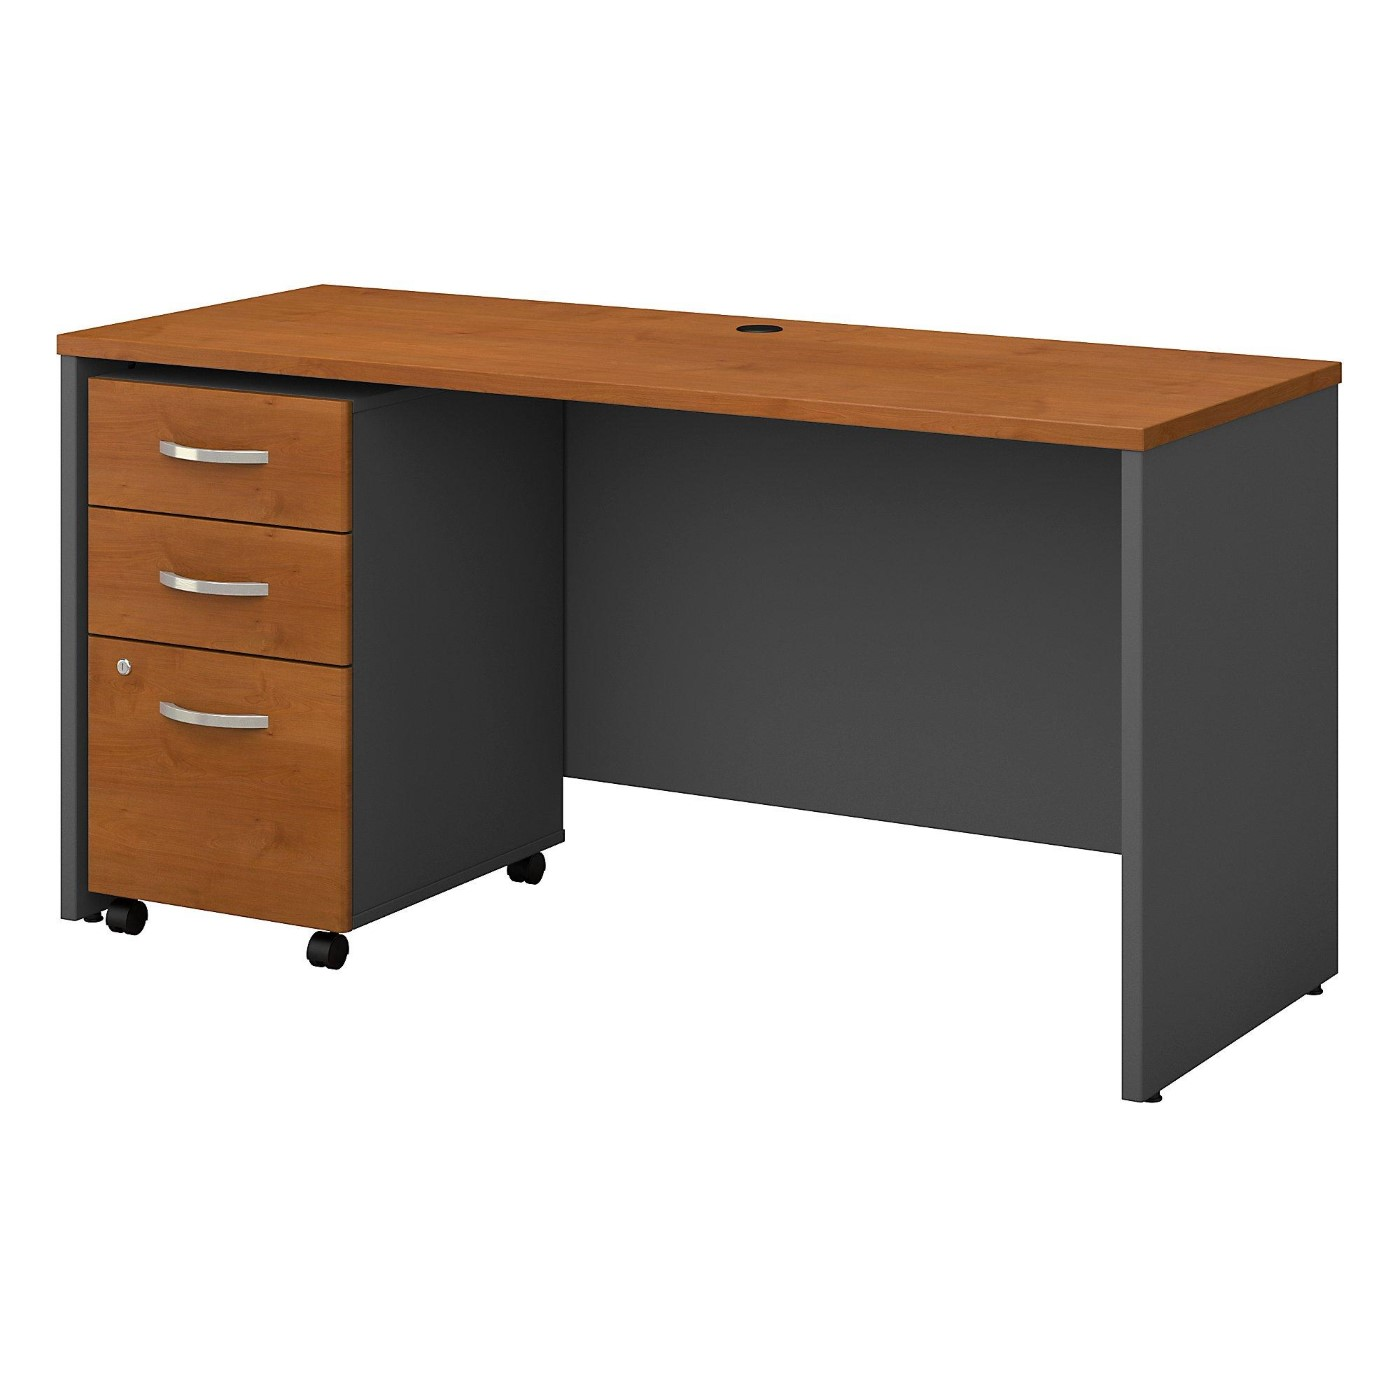 BUSH BUSINESS FURNITURE SERIES C 60W X 24D OFFICE DESK WITH MOBILE FILE CABINET. FREE SHIPPING  VIDEO BELOW.